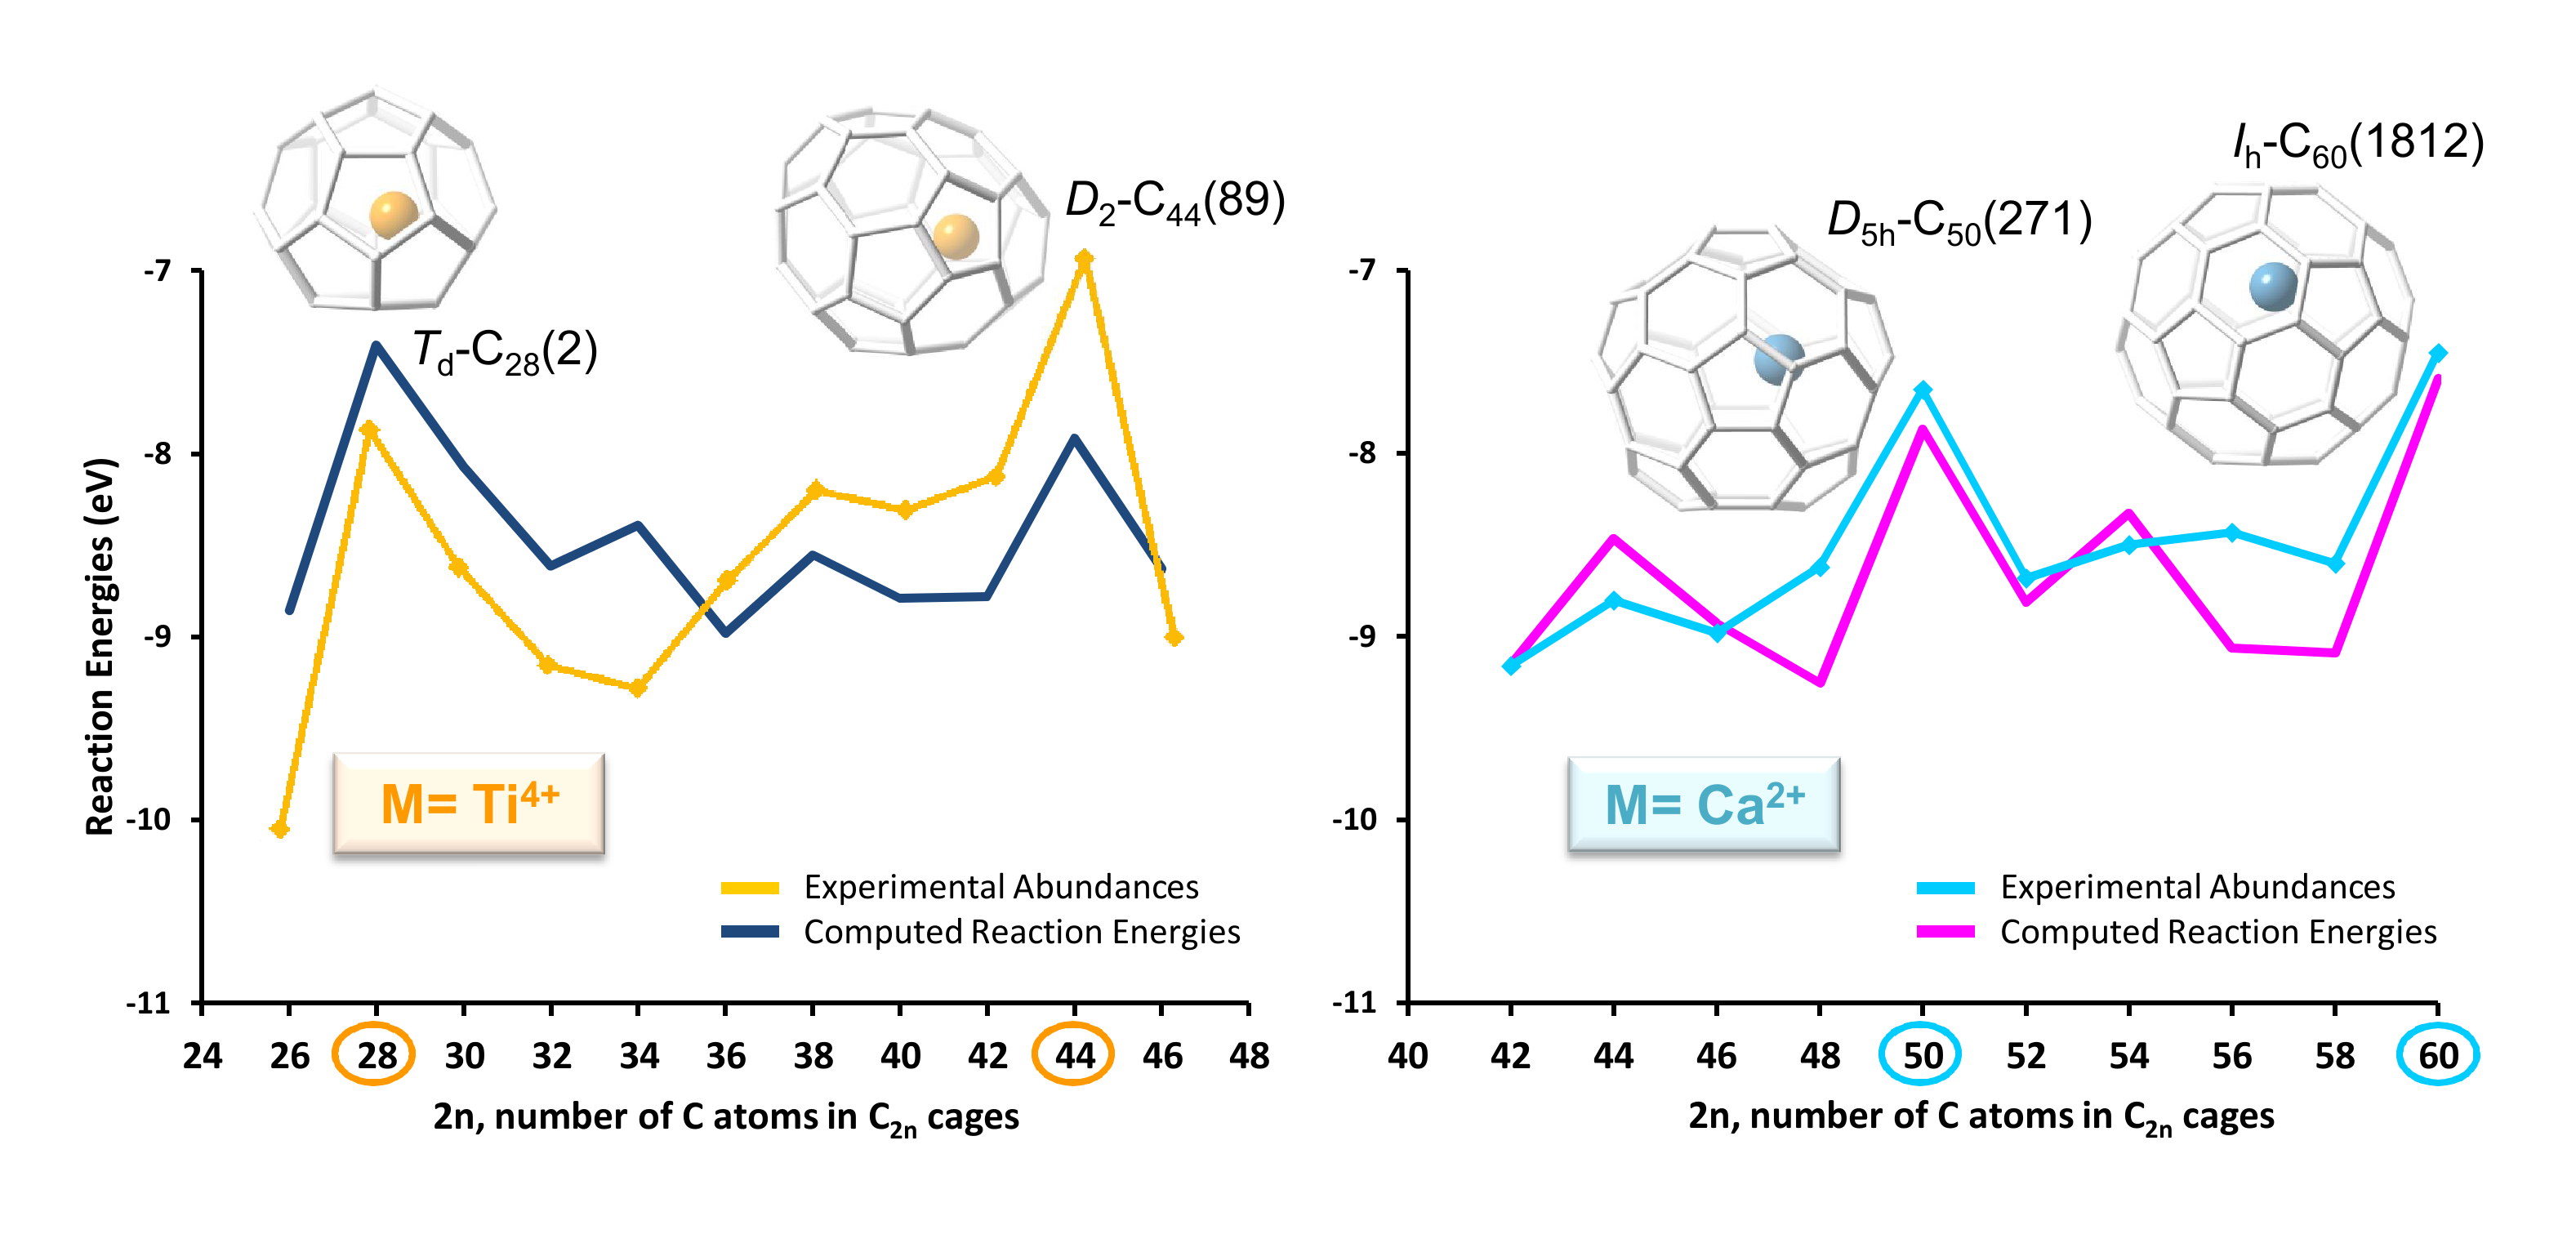 growth of endohedral metallofullerenes